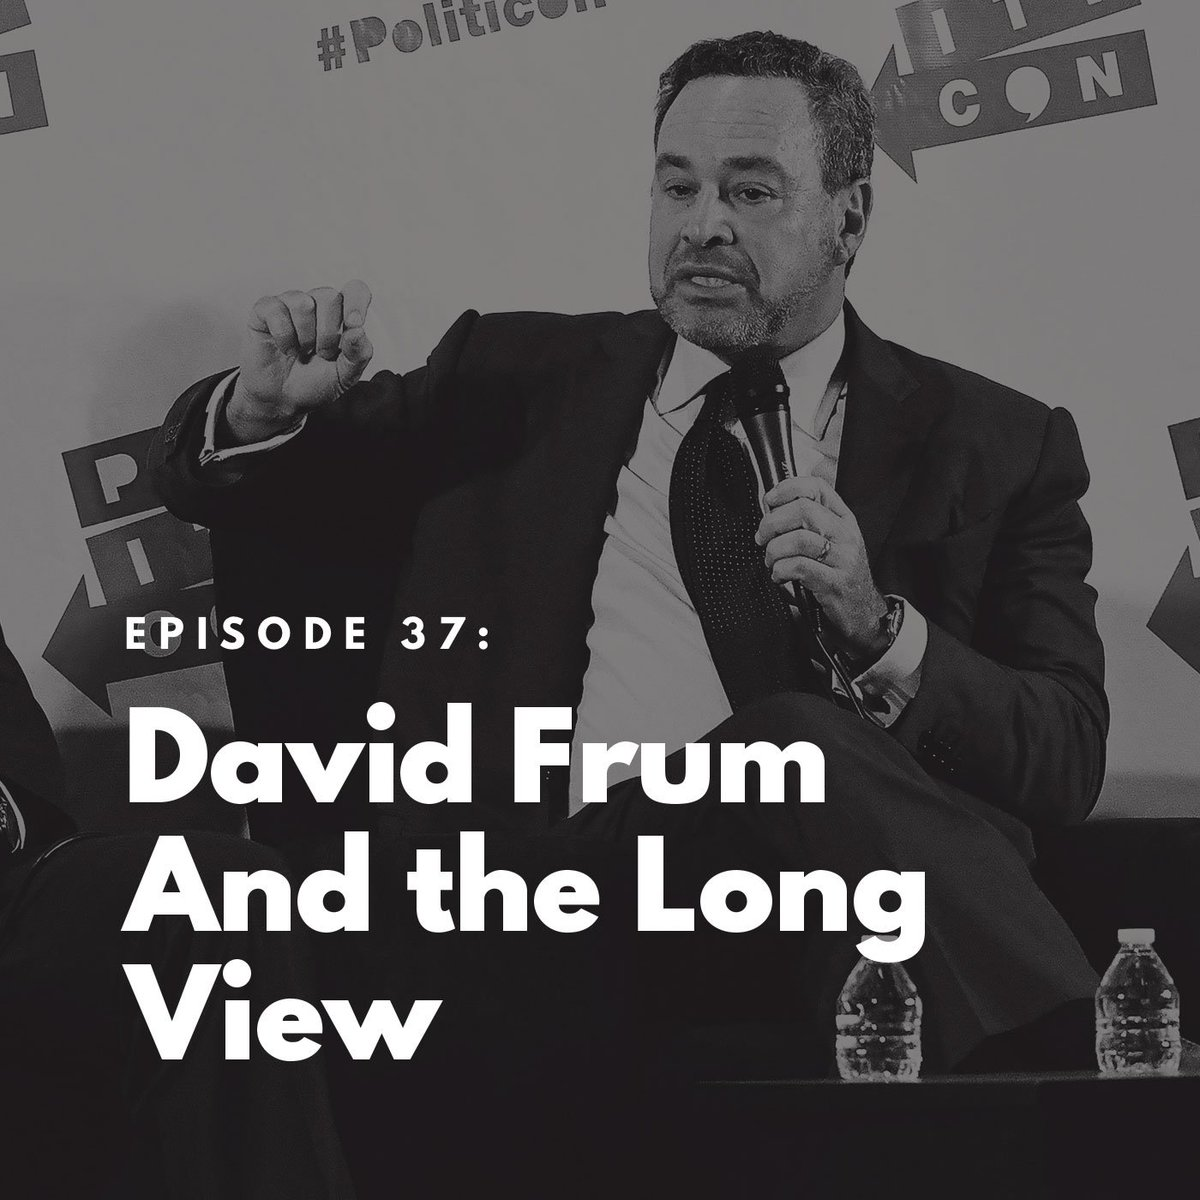 Here's @davidfrum on today's @BulwarkOnline podcast, joining @SykesCharlie to discuss taking the long view on politics and the GOP. From the Tea Party, the bailout, Obamacare, and now through the era of Trump.  https://podcast.thebulwark.com/david-frum-and-the-long-view…